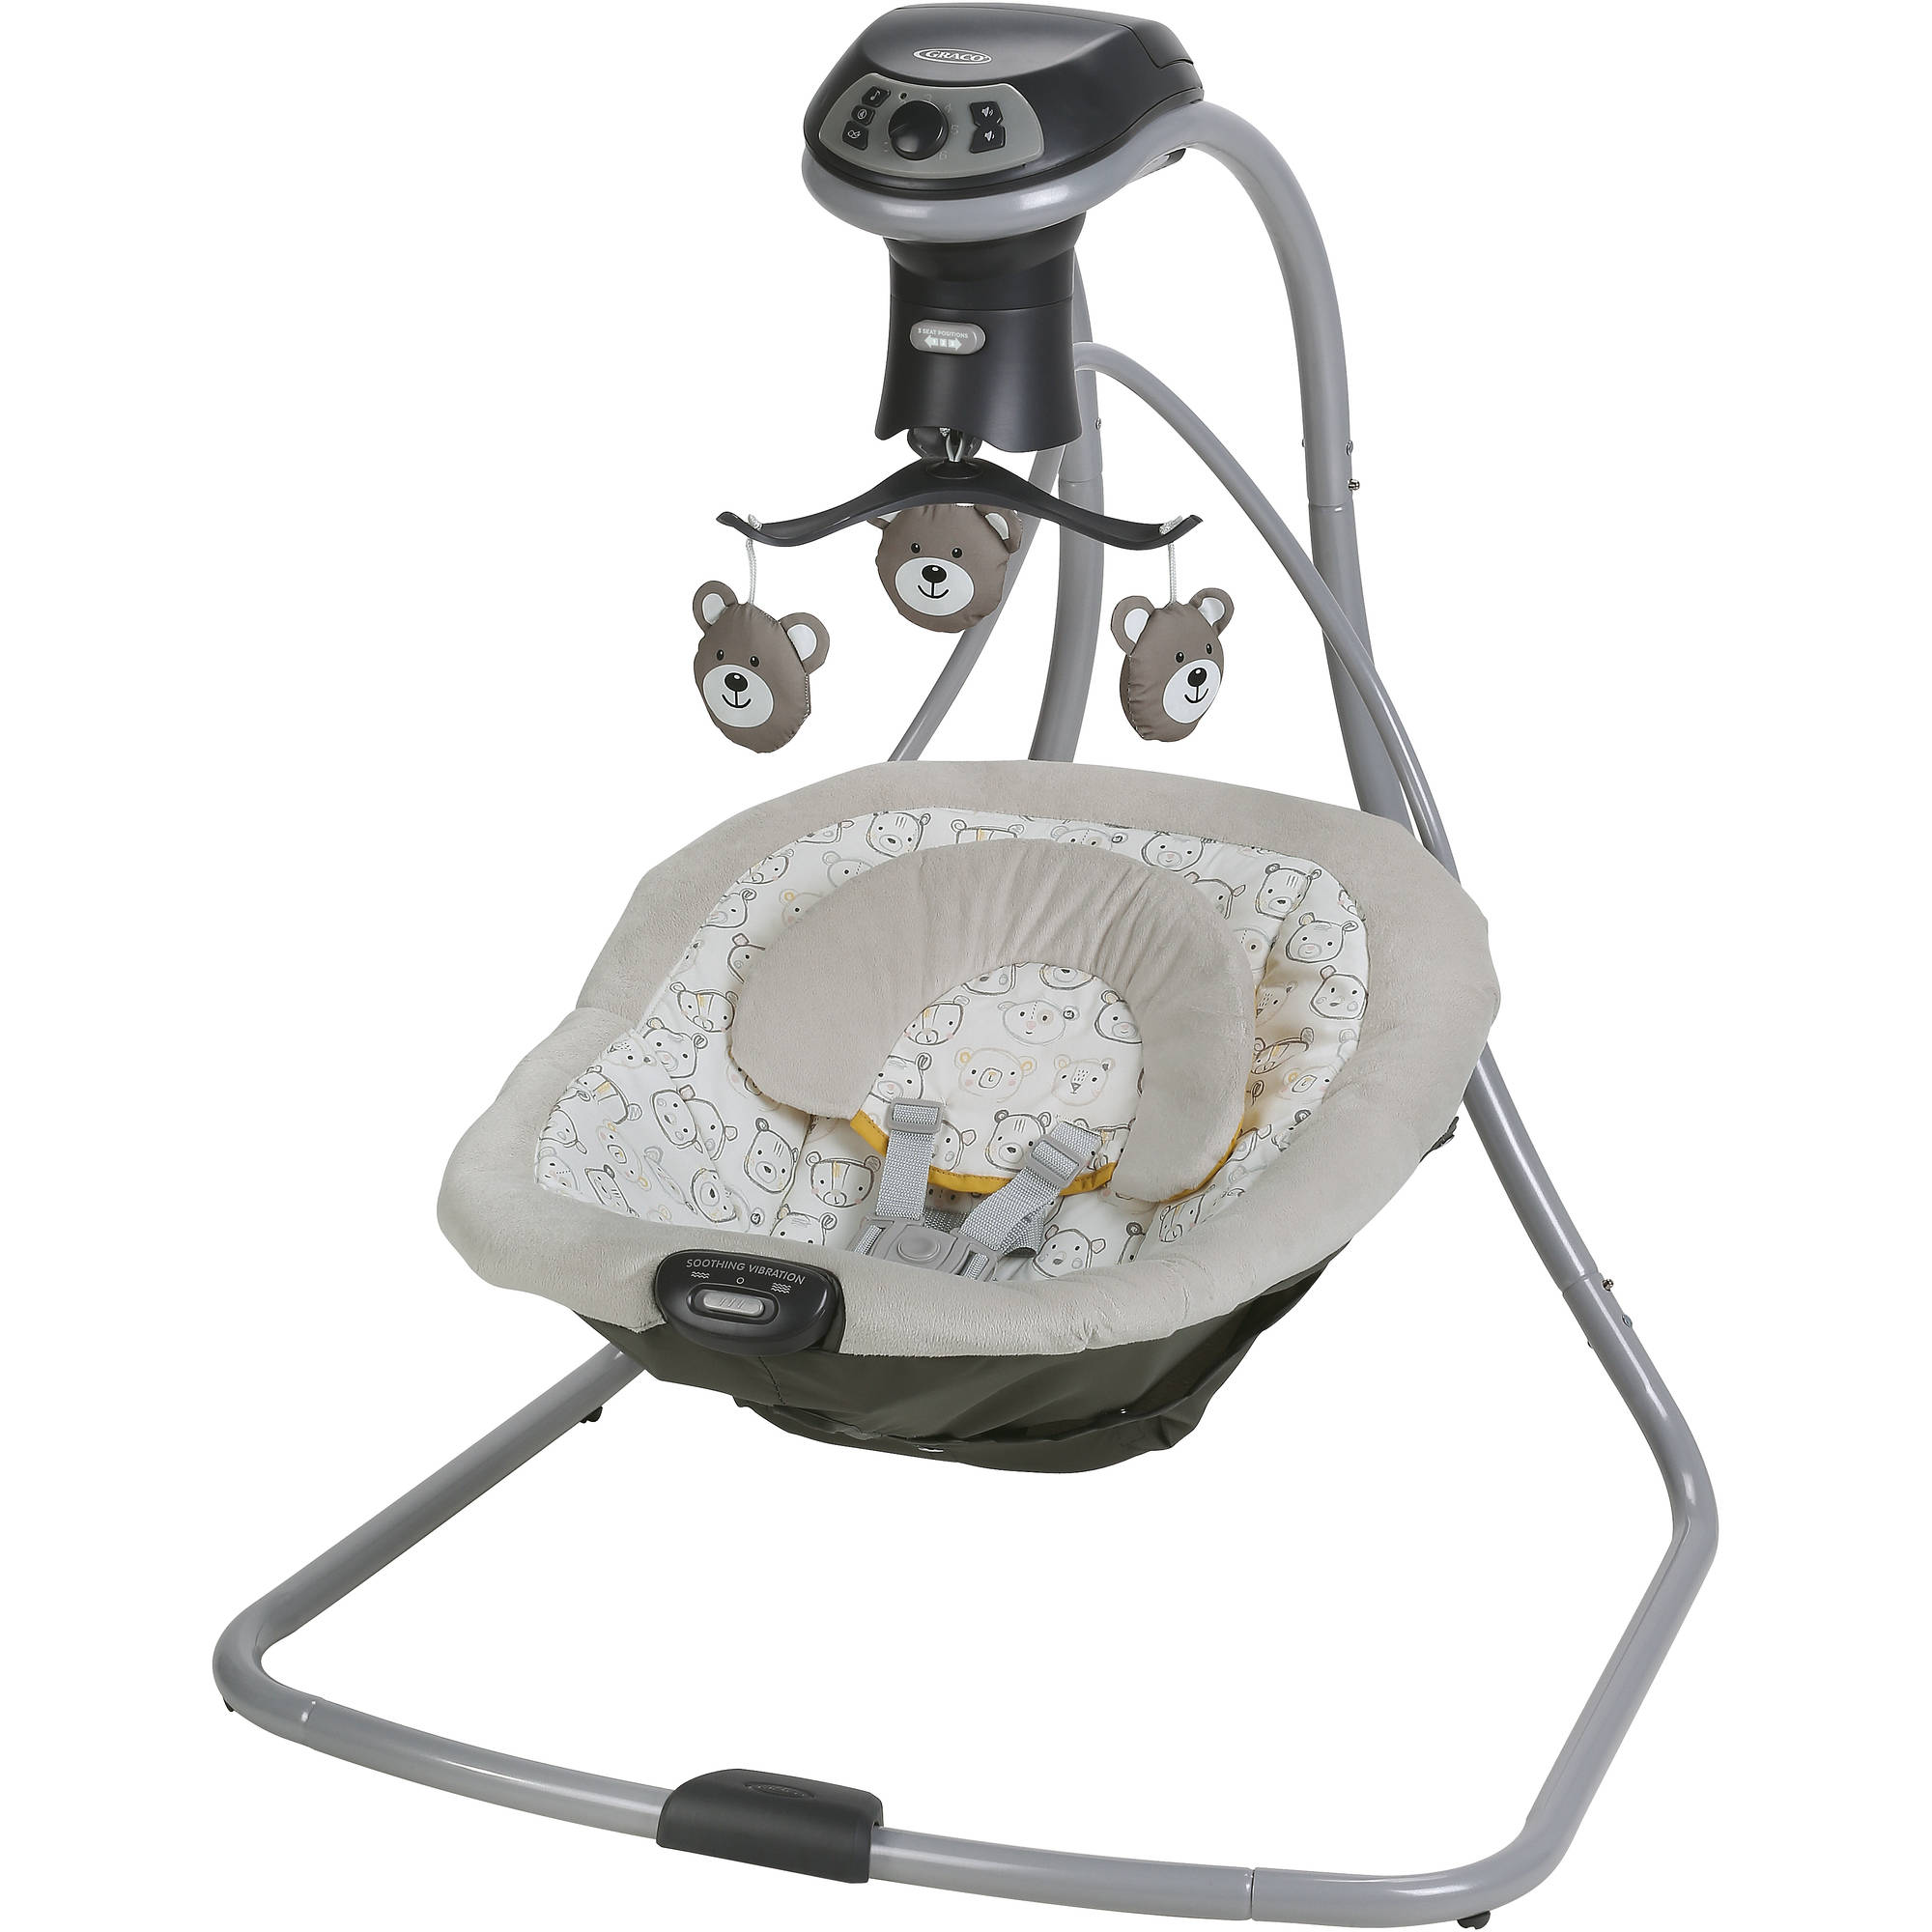 Graco Simple Sway LX with Multi-Direction Baby Swing, Teddy